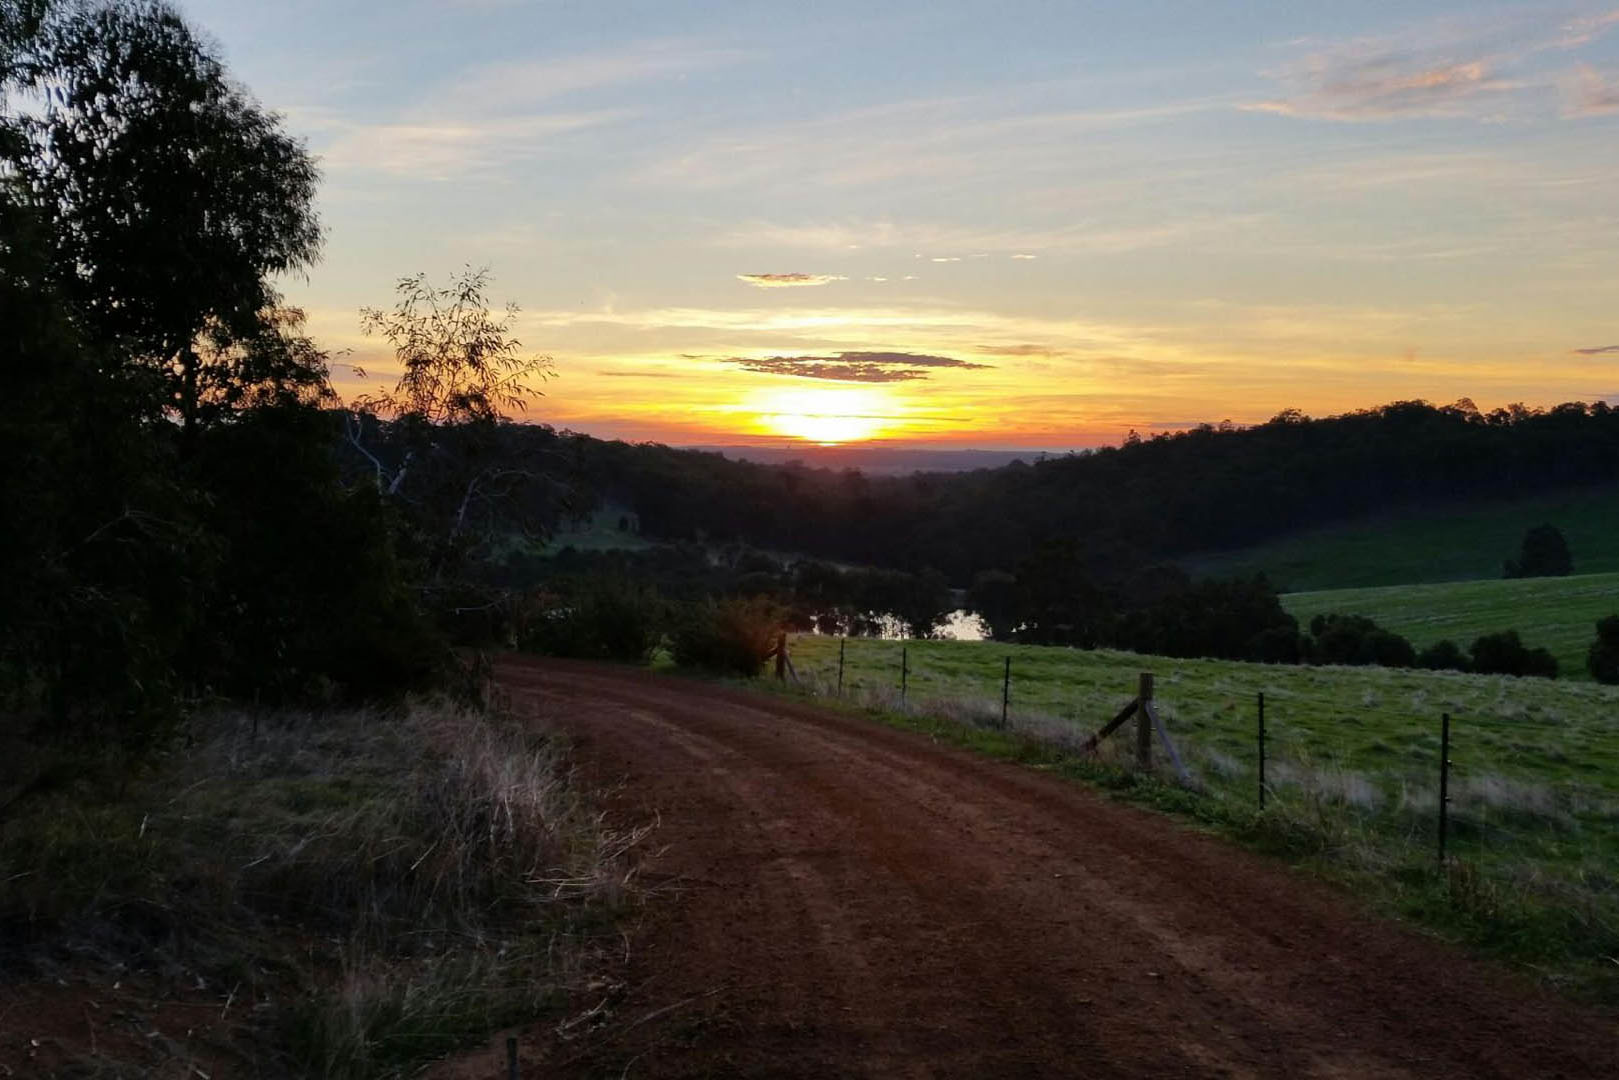 sunset on driveway henty lodge ferguson valley